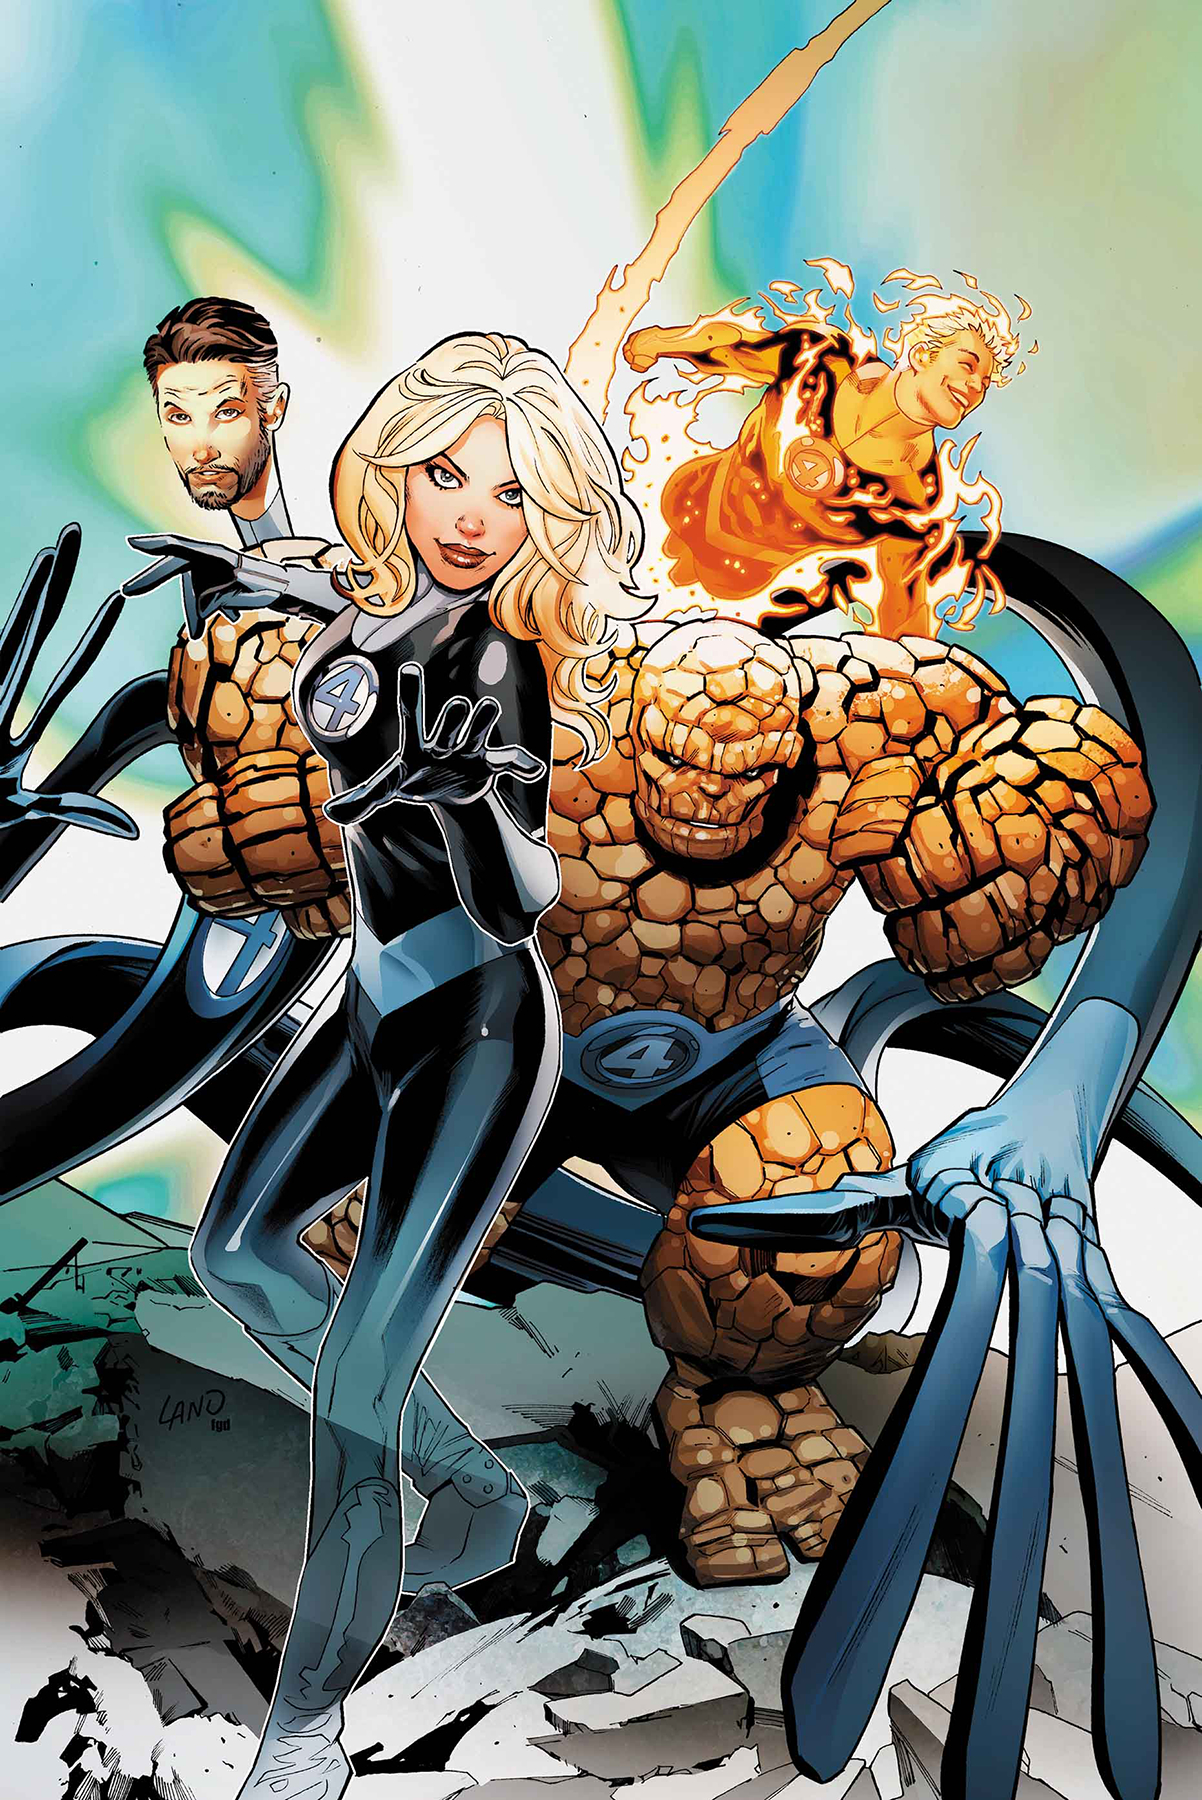 FANTASTIC FOUR PRODIGAL SUN #1 LAND VAR